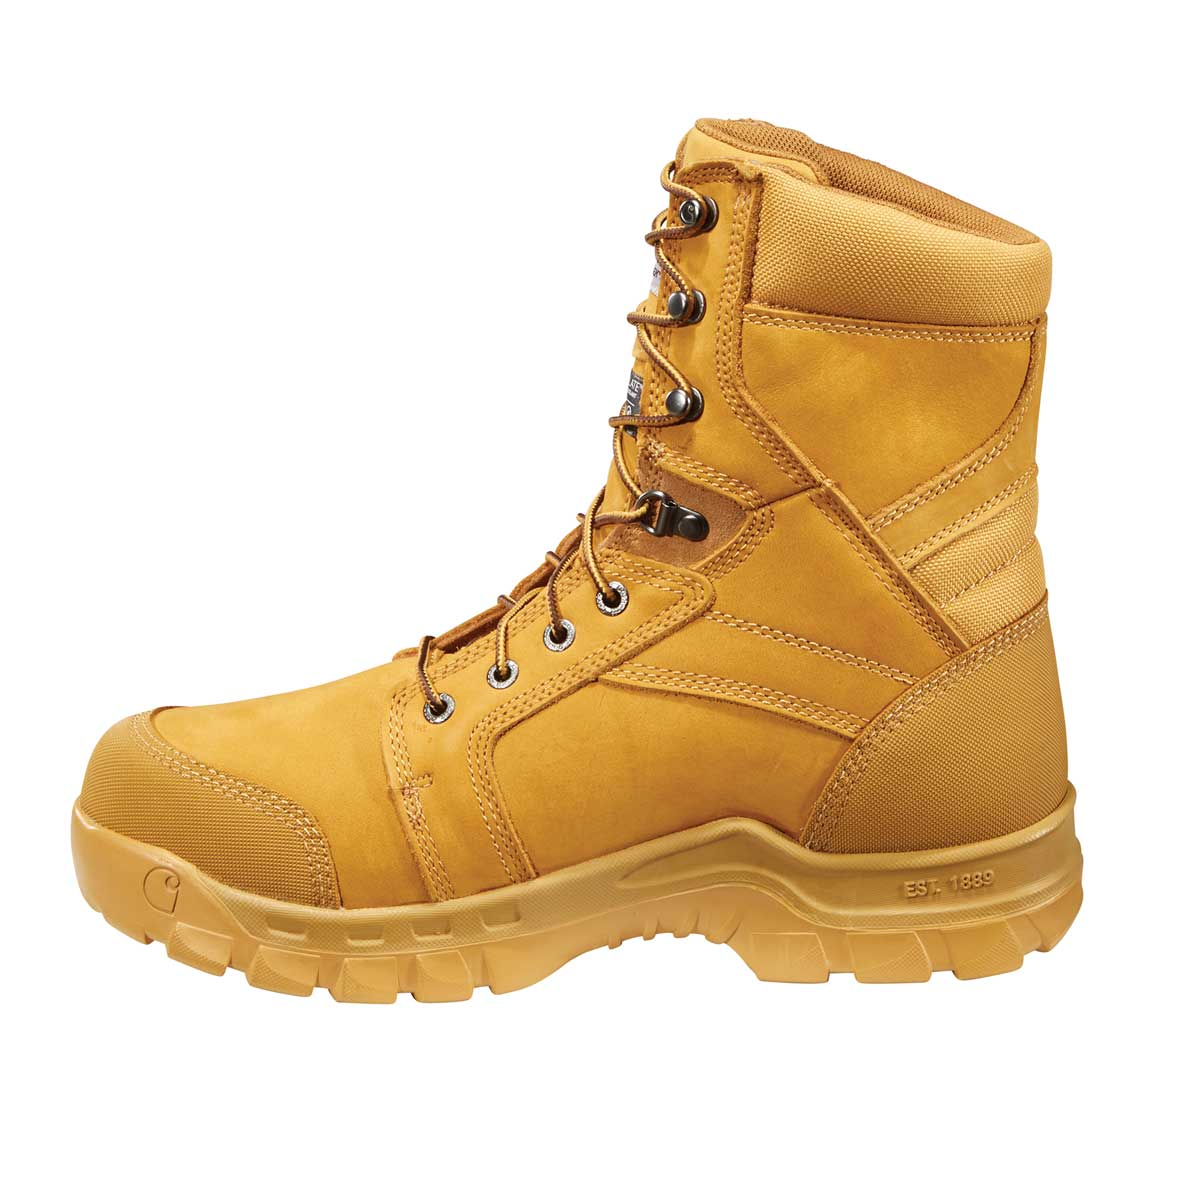 "Carhartt Rugged Flex 8"" Insulated Plain Toe Boot"